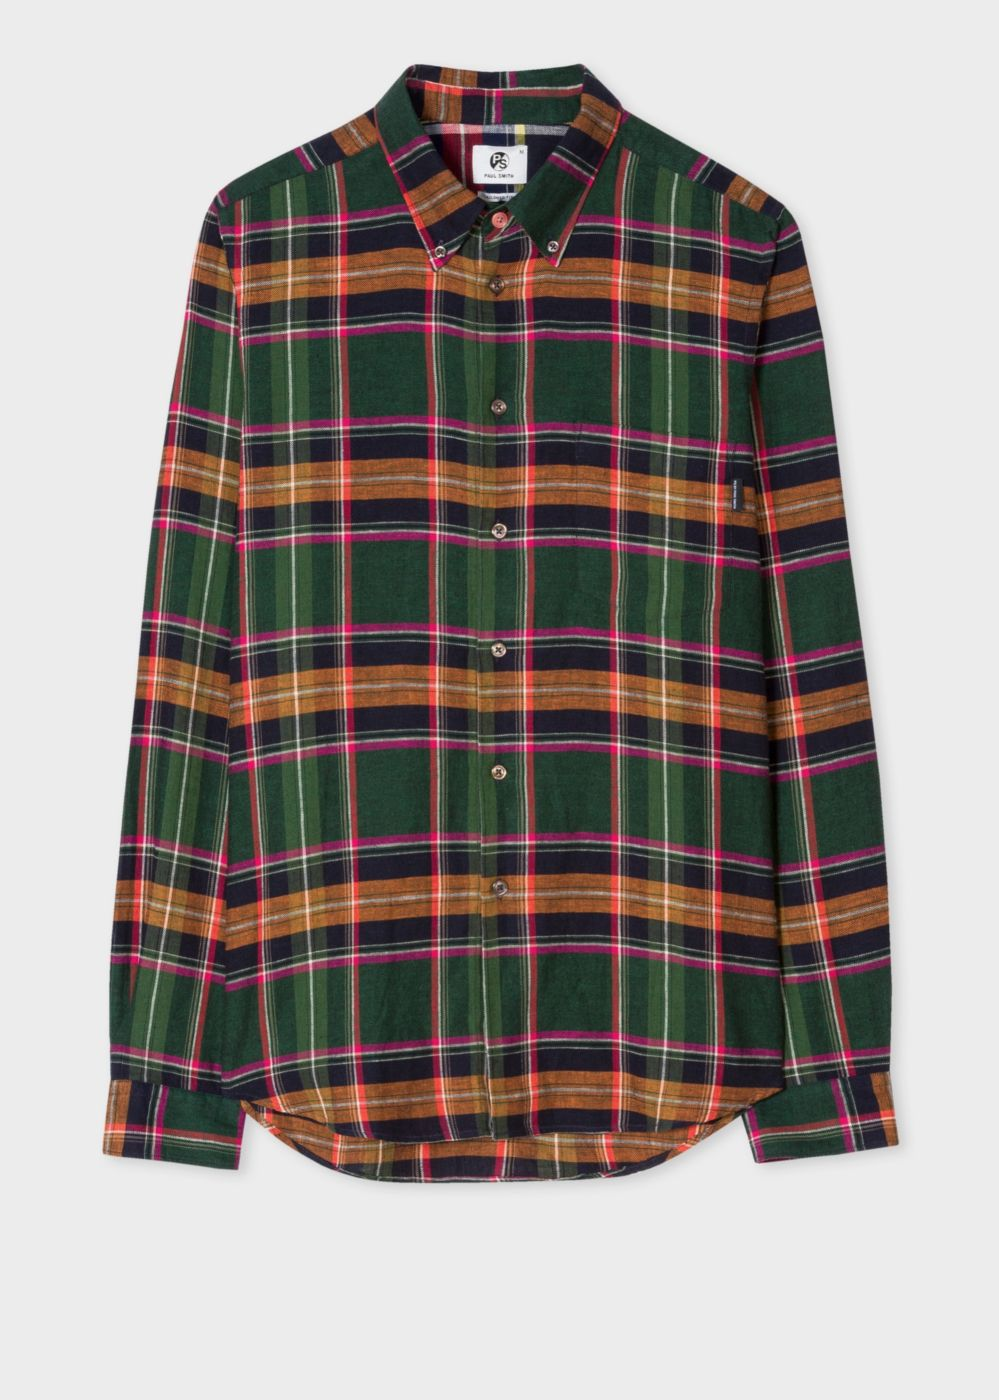 Paul Smith Men's Tailored-Fit Green, Orange And Pink Check Cotton-Linen Button-Down Shirt